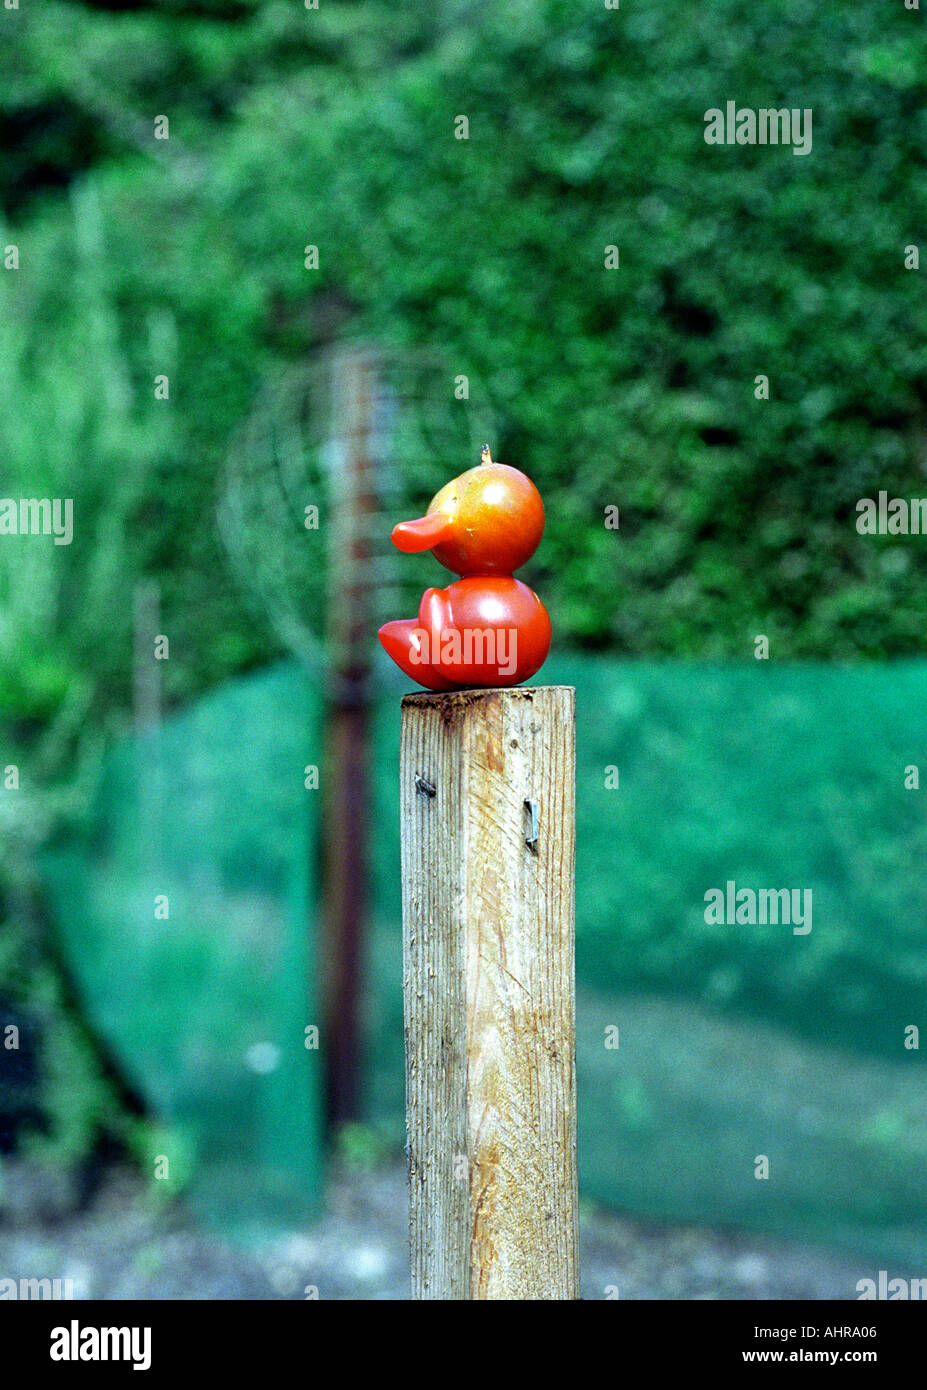 TOMATO MAN SITTING ON POST IN GARDEN HEALTH AND FIT FOR EATING - Stock Image